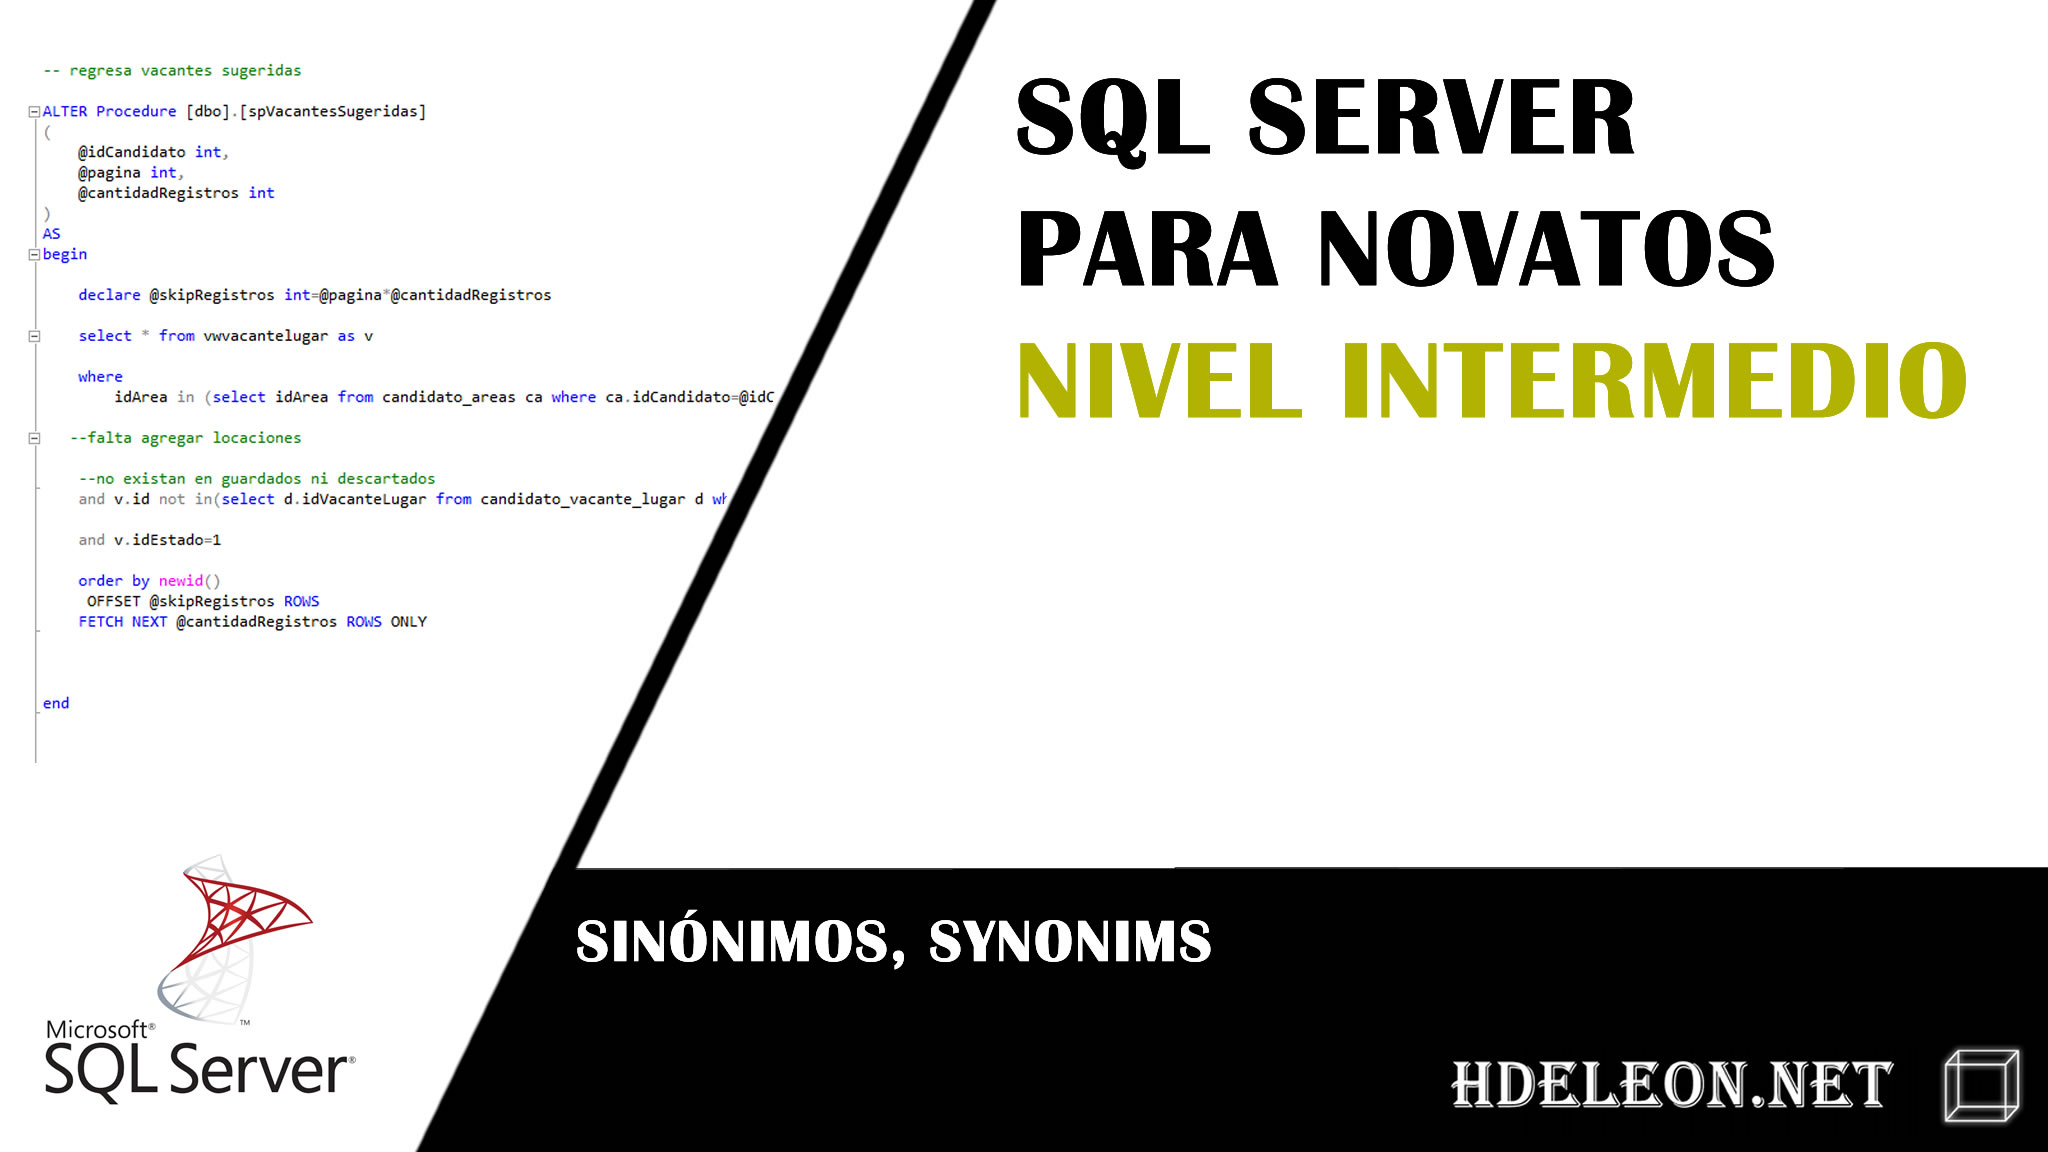 Curso gratuito de Sql Server nivel Intermedio, sinónimos, synonyms #1